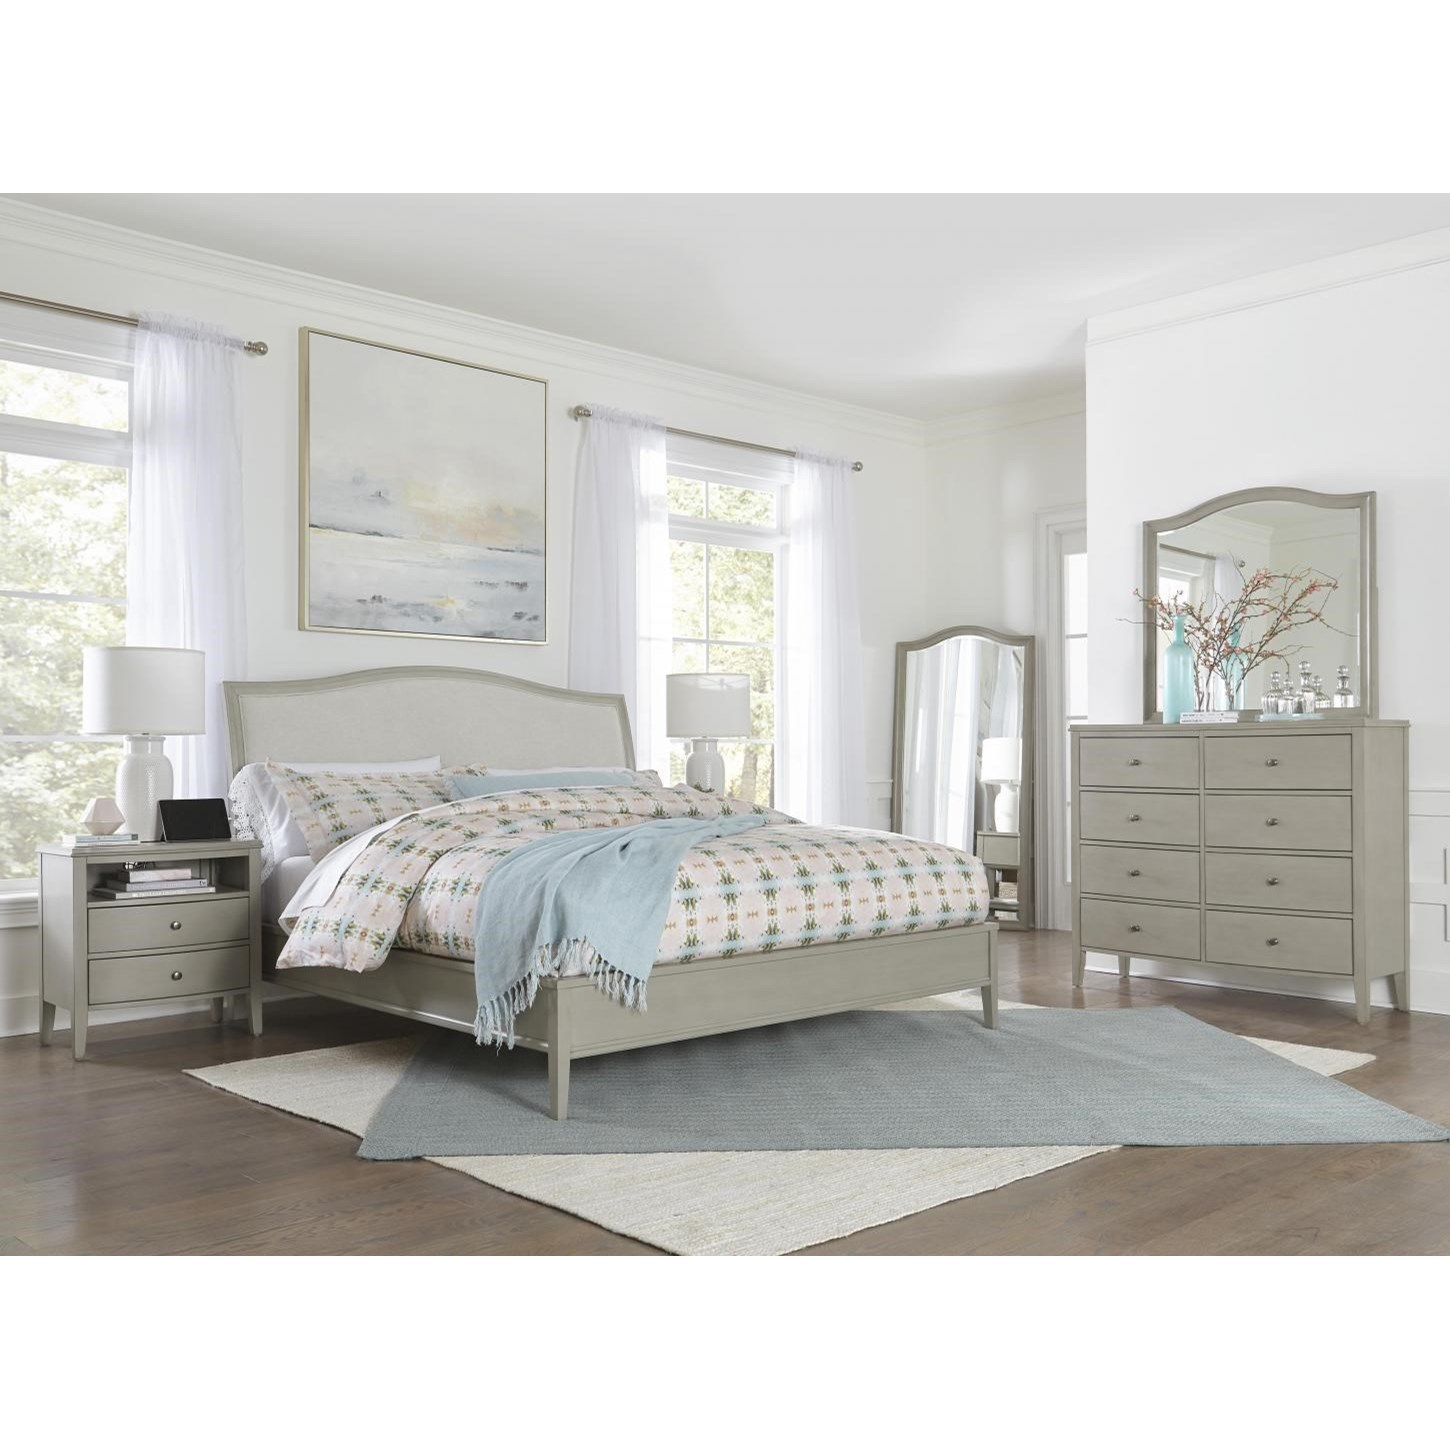 Charlotte  King Bedroom Group  by Aspenhome at Baer's Furniture